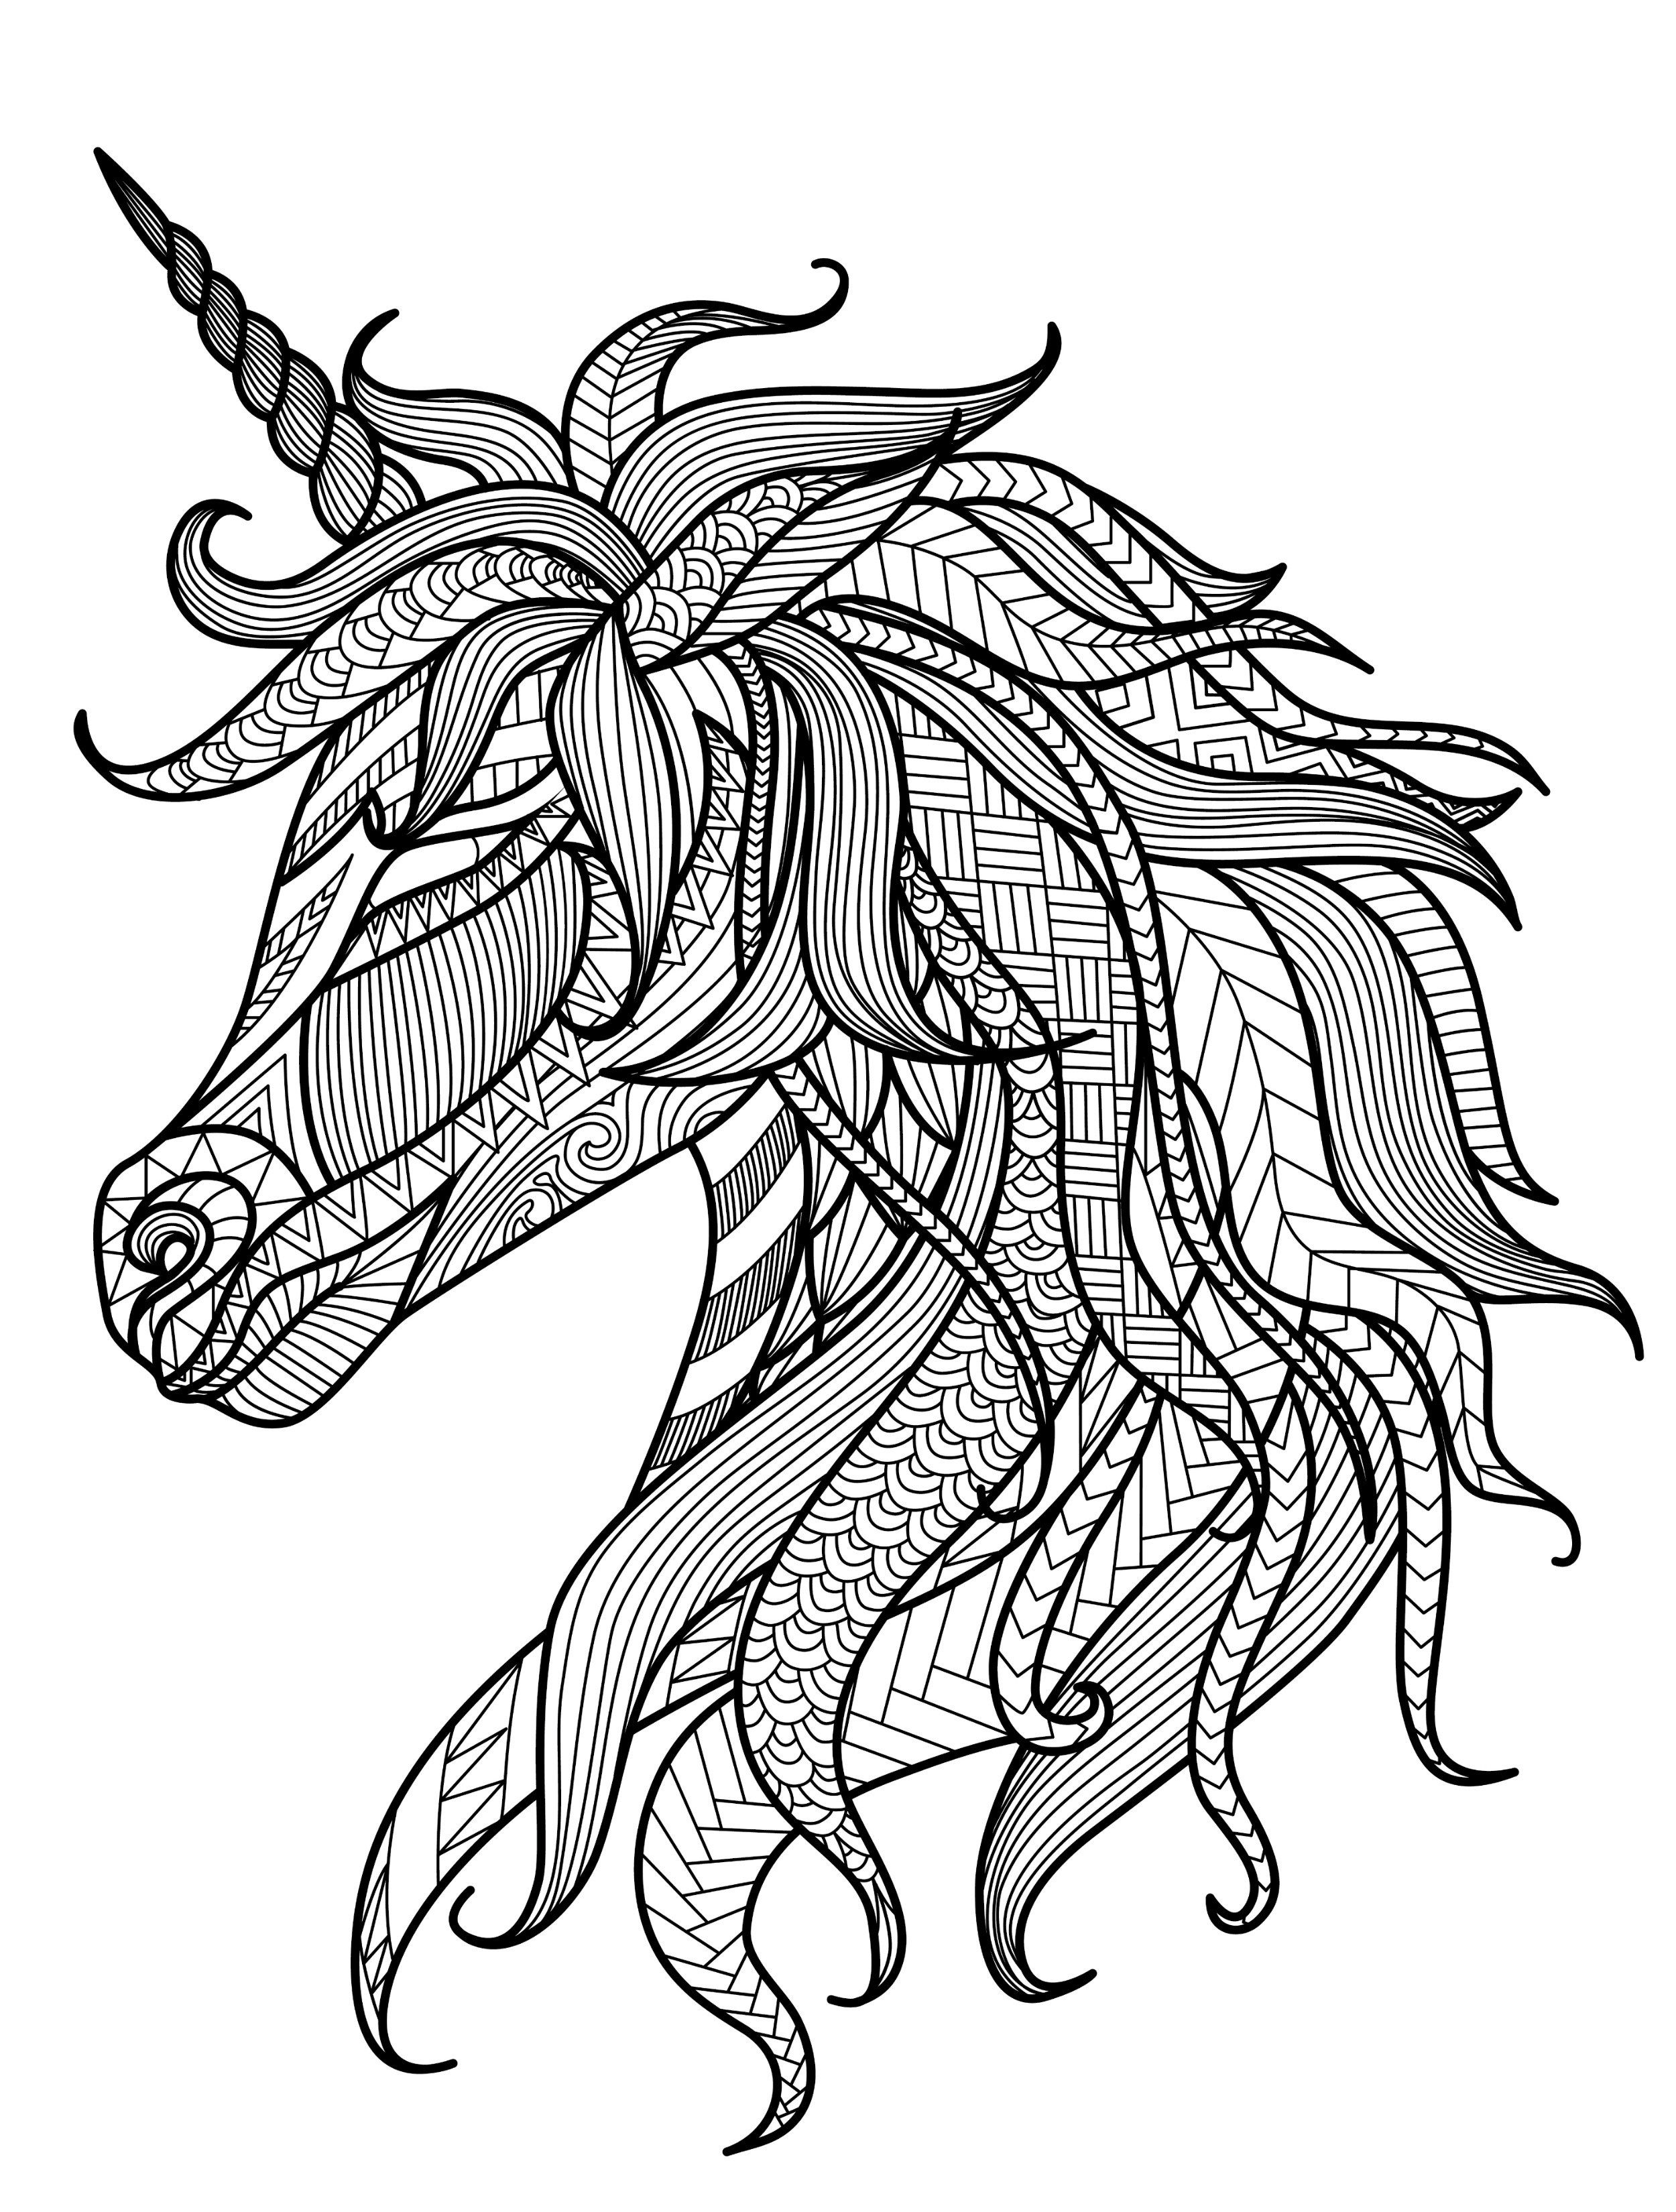 free downloadable coloring pages for adults Unicorn adult coloring page   free downloadable | coloring pages  free downloadable coloring pages for adults